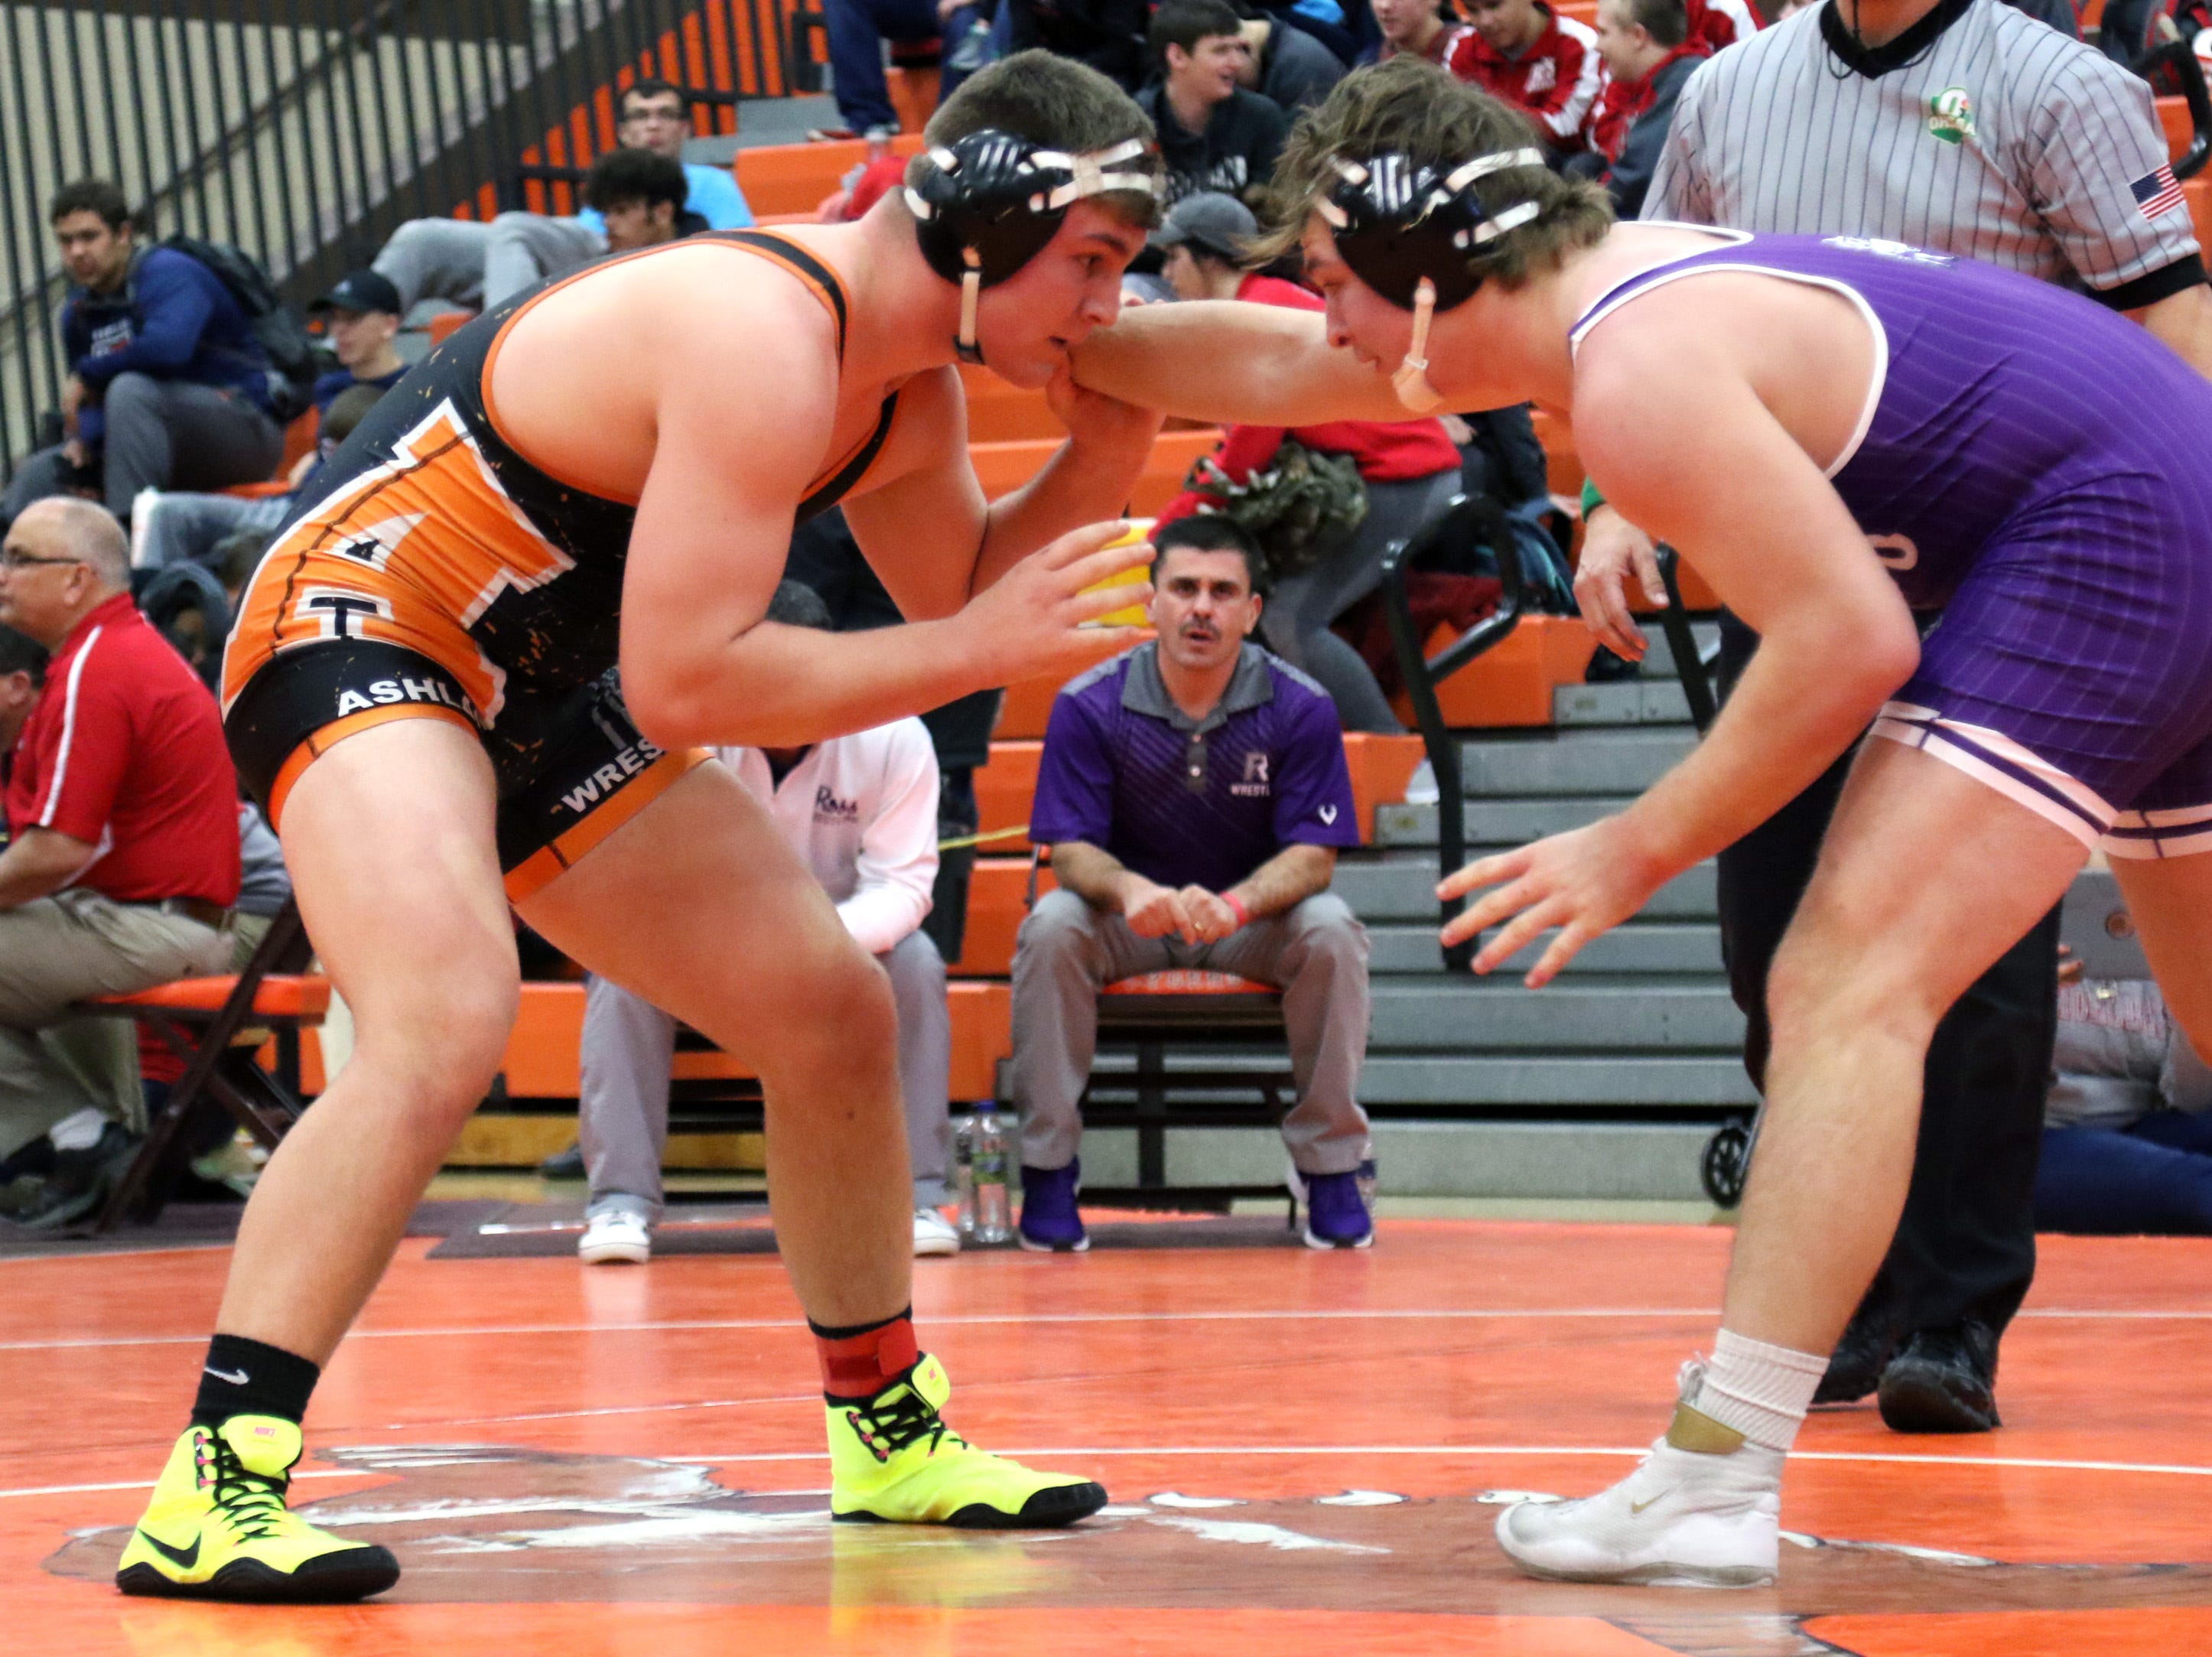 Ashland's Josh Bever spars with Fremont Ross' Caleb Wood during the final matches at the JC Gorman Wrestling Tournament on Saturday.